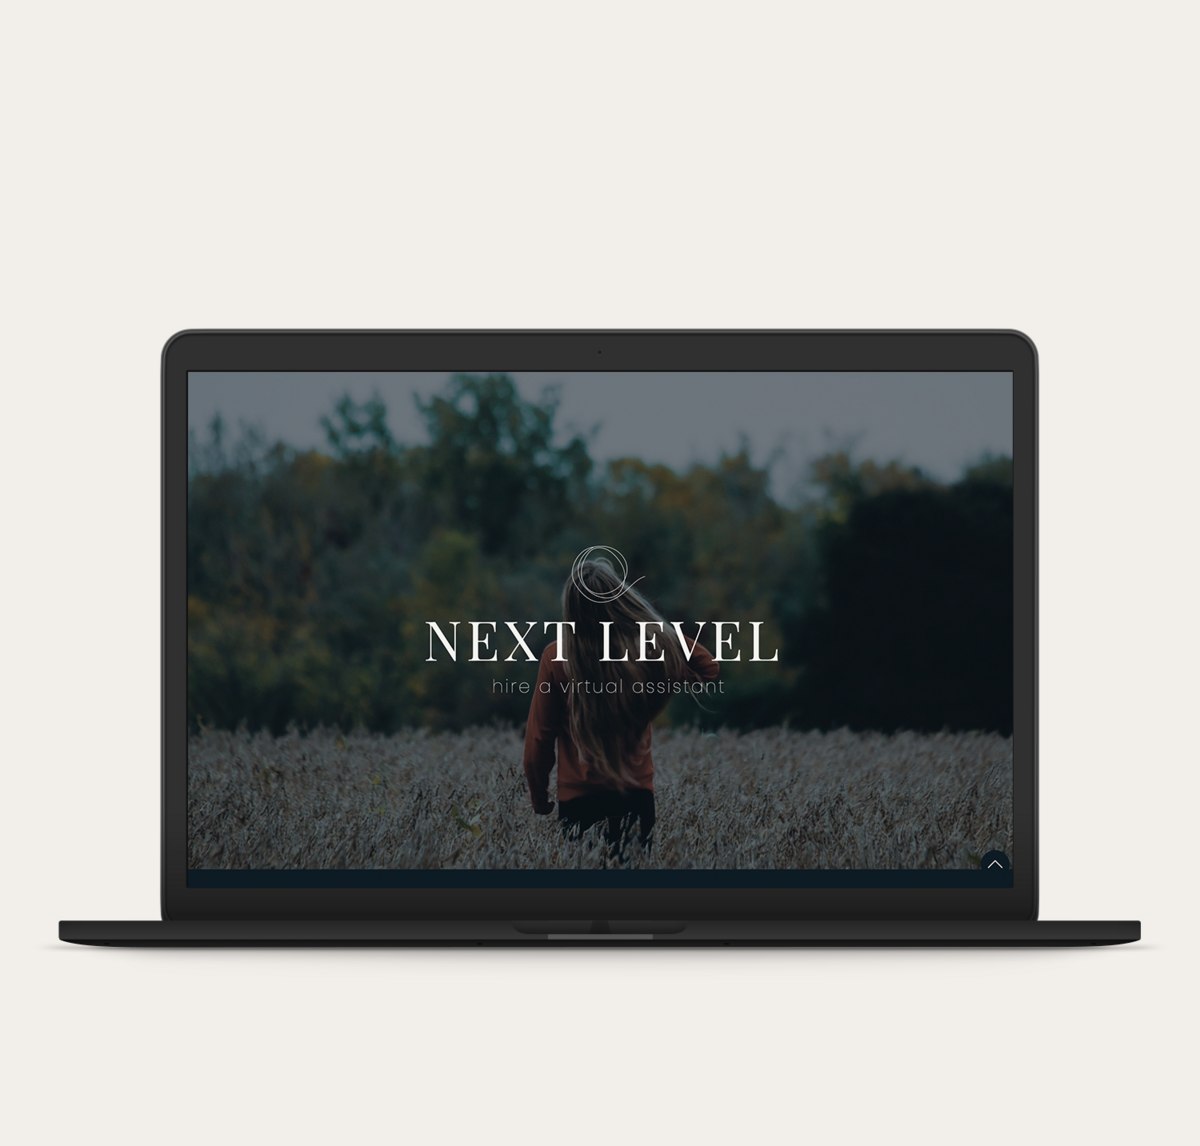 Studio_Above-showit-website-template-next_level